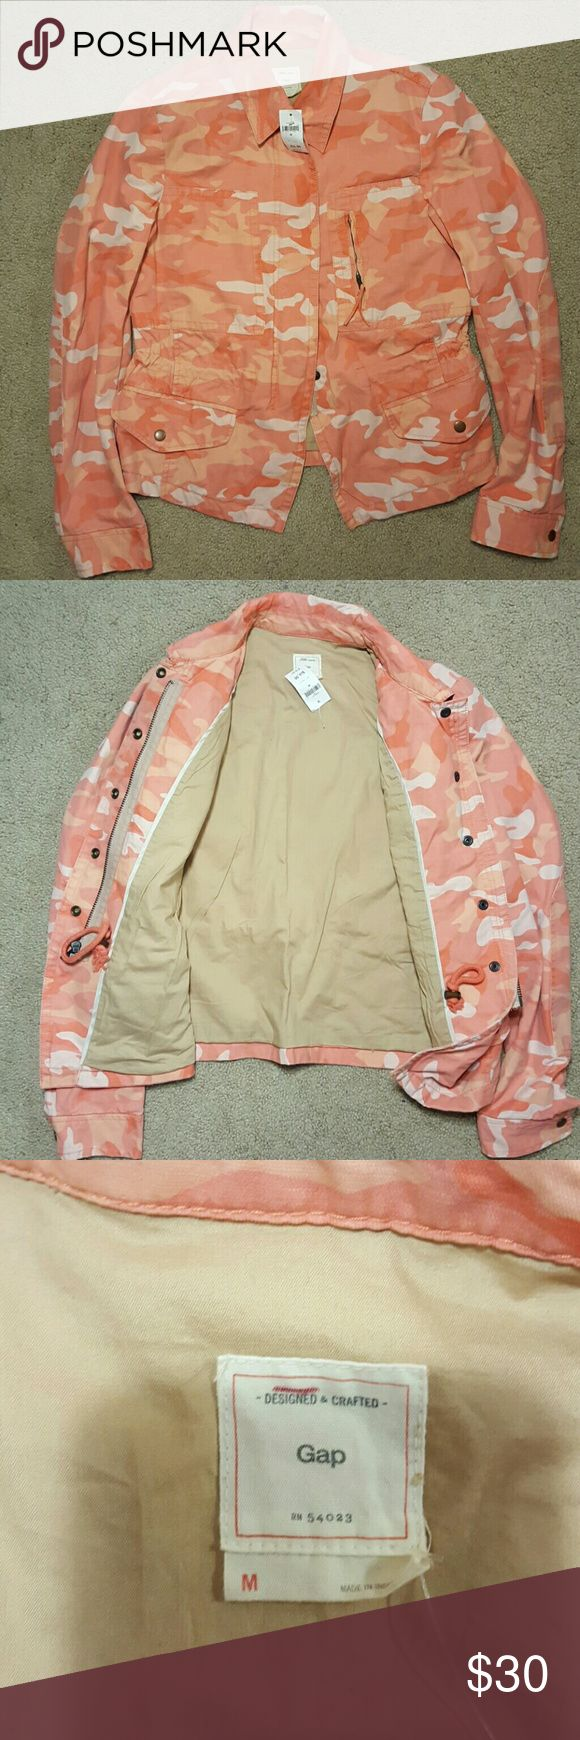 GAP Pink Camo jacket Never worn. With tags. Super sturdy fabric with nice details. Adjustible cinch waist. Great coat for transition seasons GAP Jackets & Coats Utility Jackets